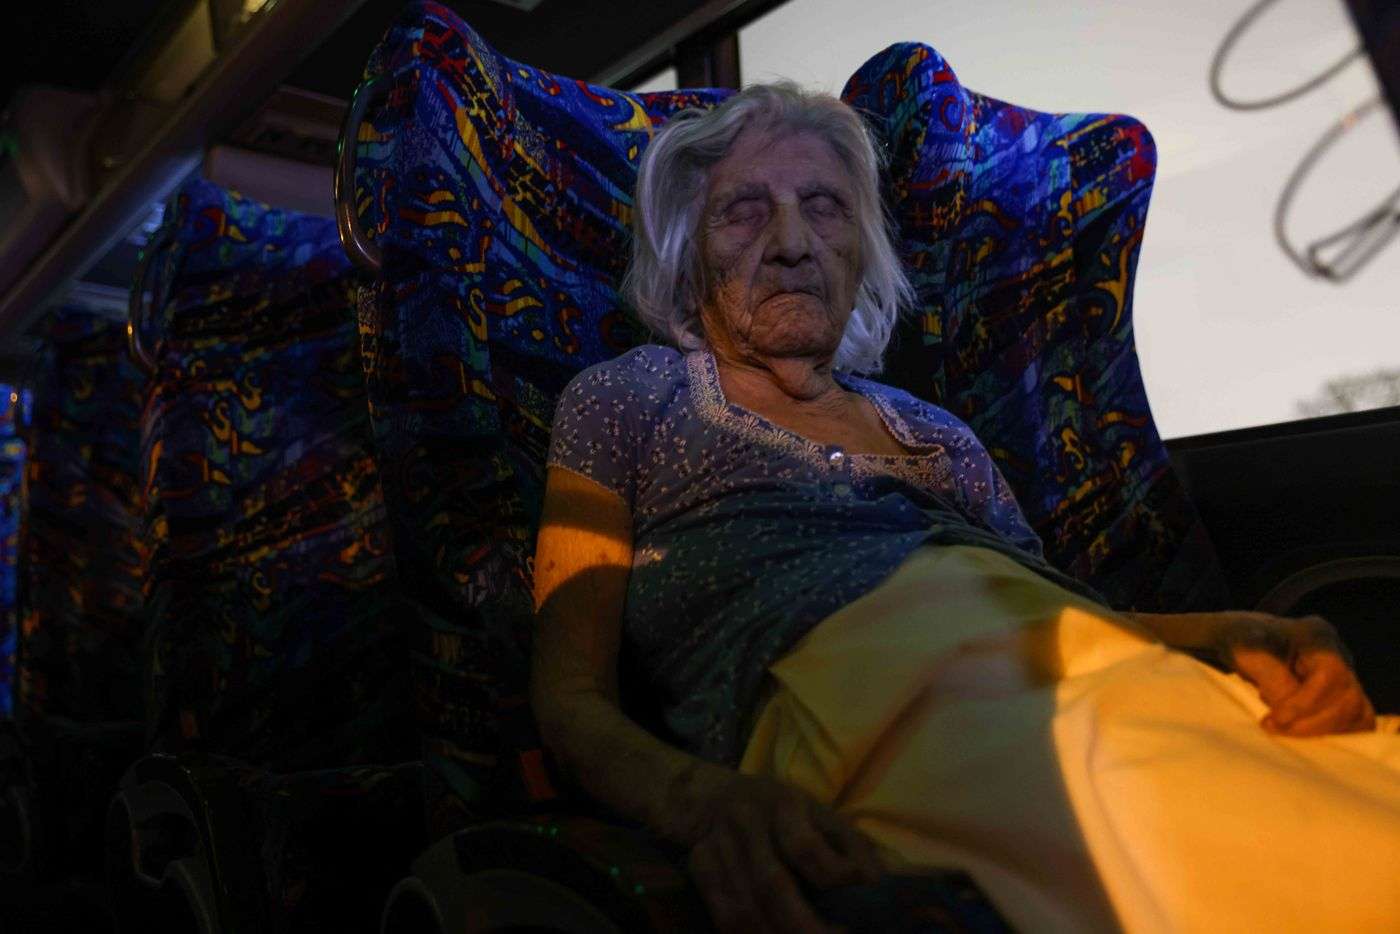 Maria Barajas, who is 100 years old and suffers from dementia, sleeps on the bus that serves as a warming center at Pleasant Oaks Recreation Center on Wednesday, February 18, 2021 in Dallas.